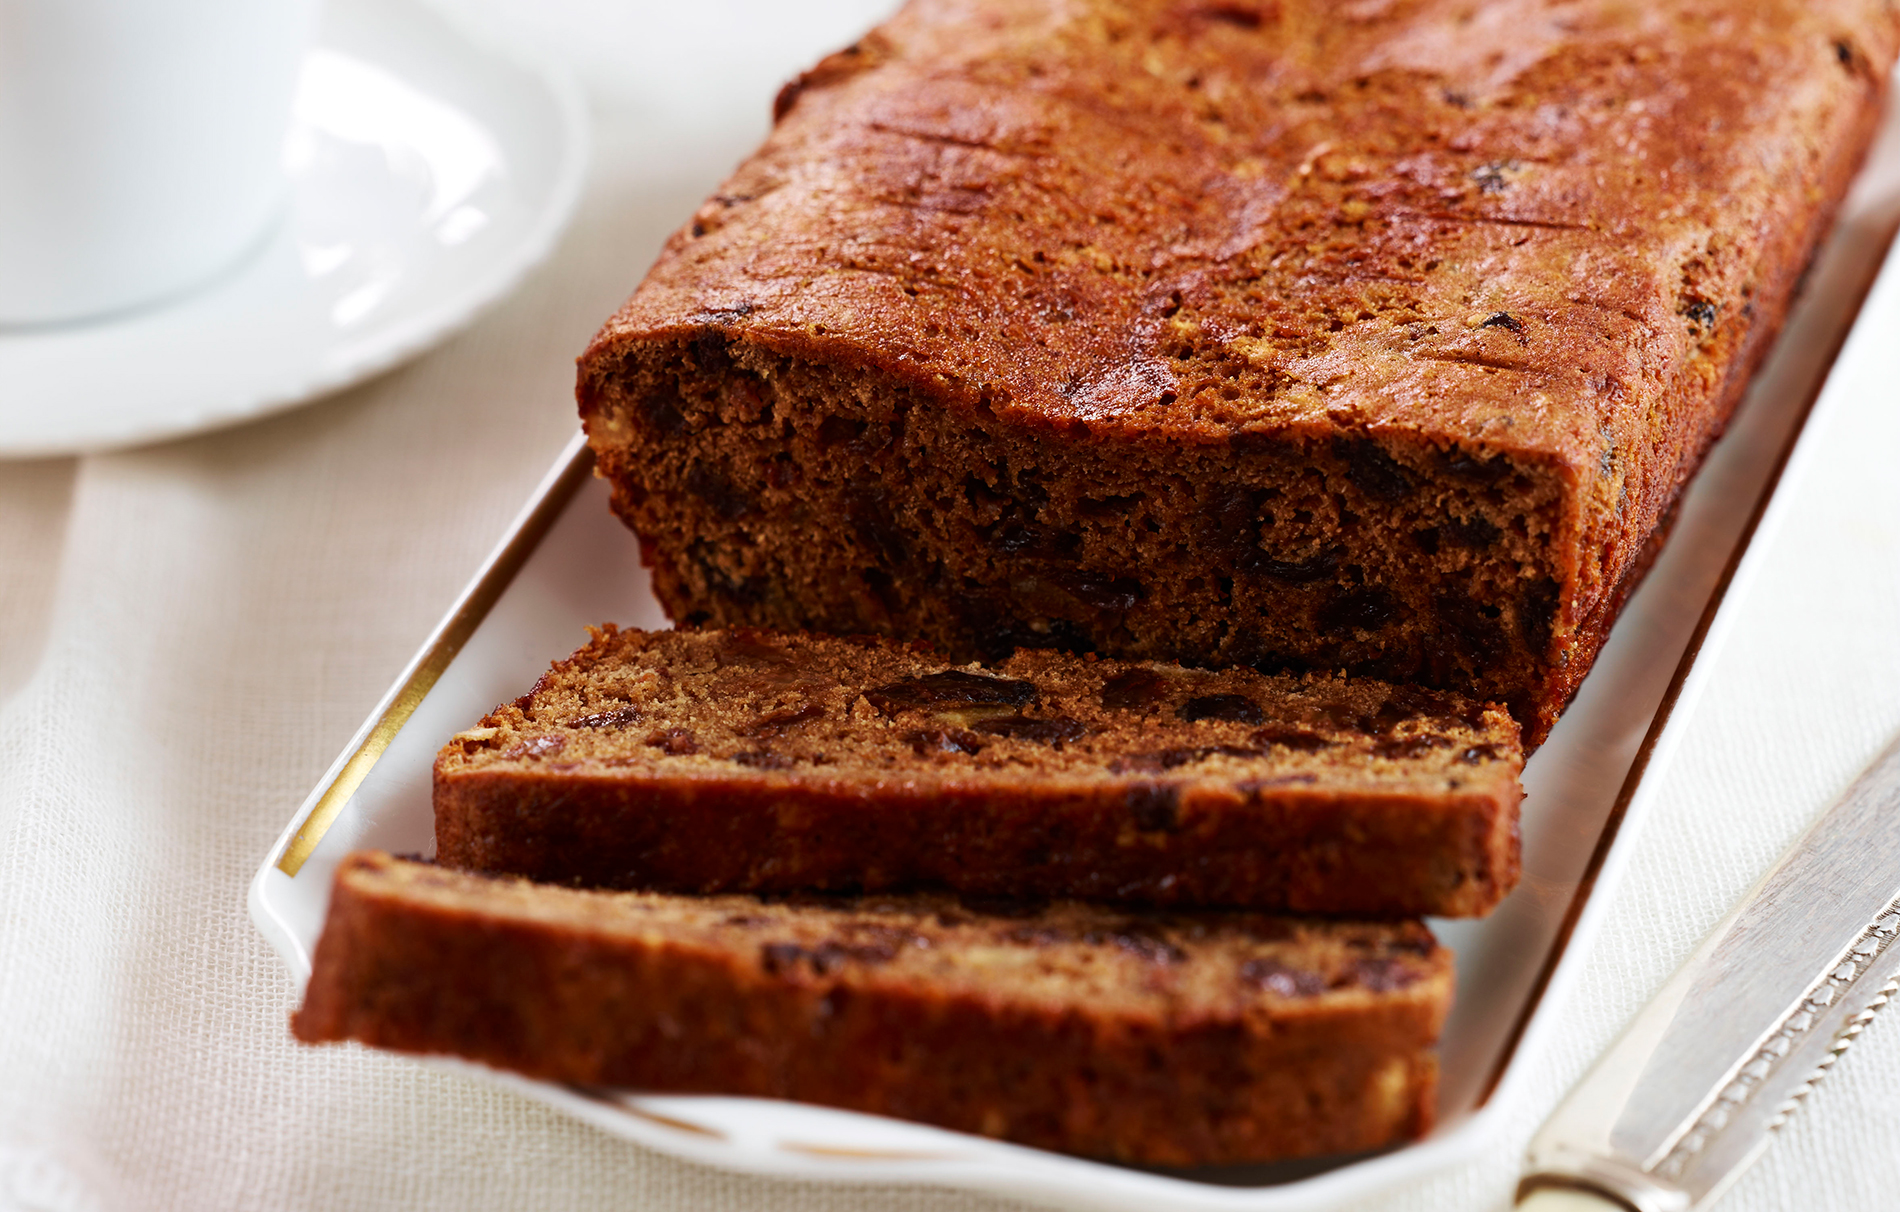 Master a classic malt loaf with this easy recipe